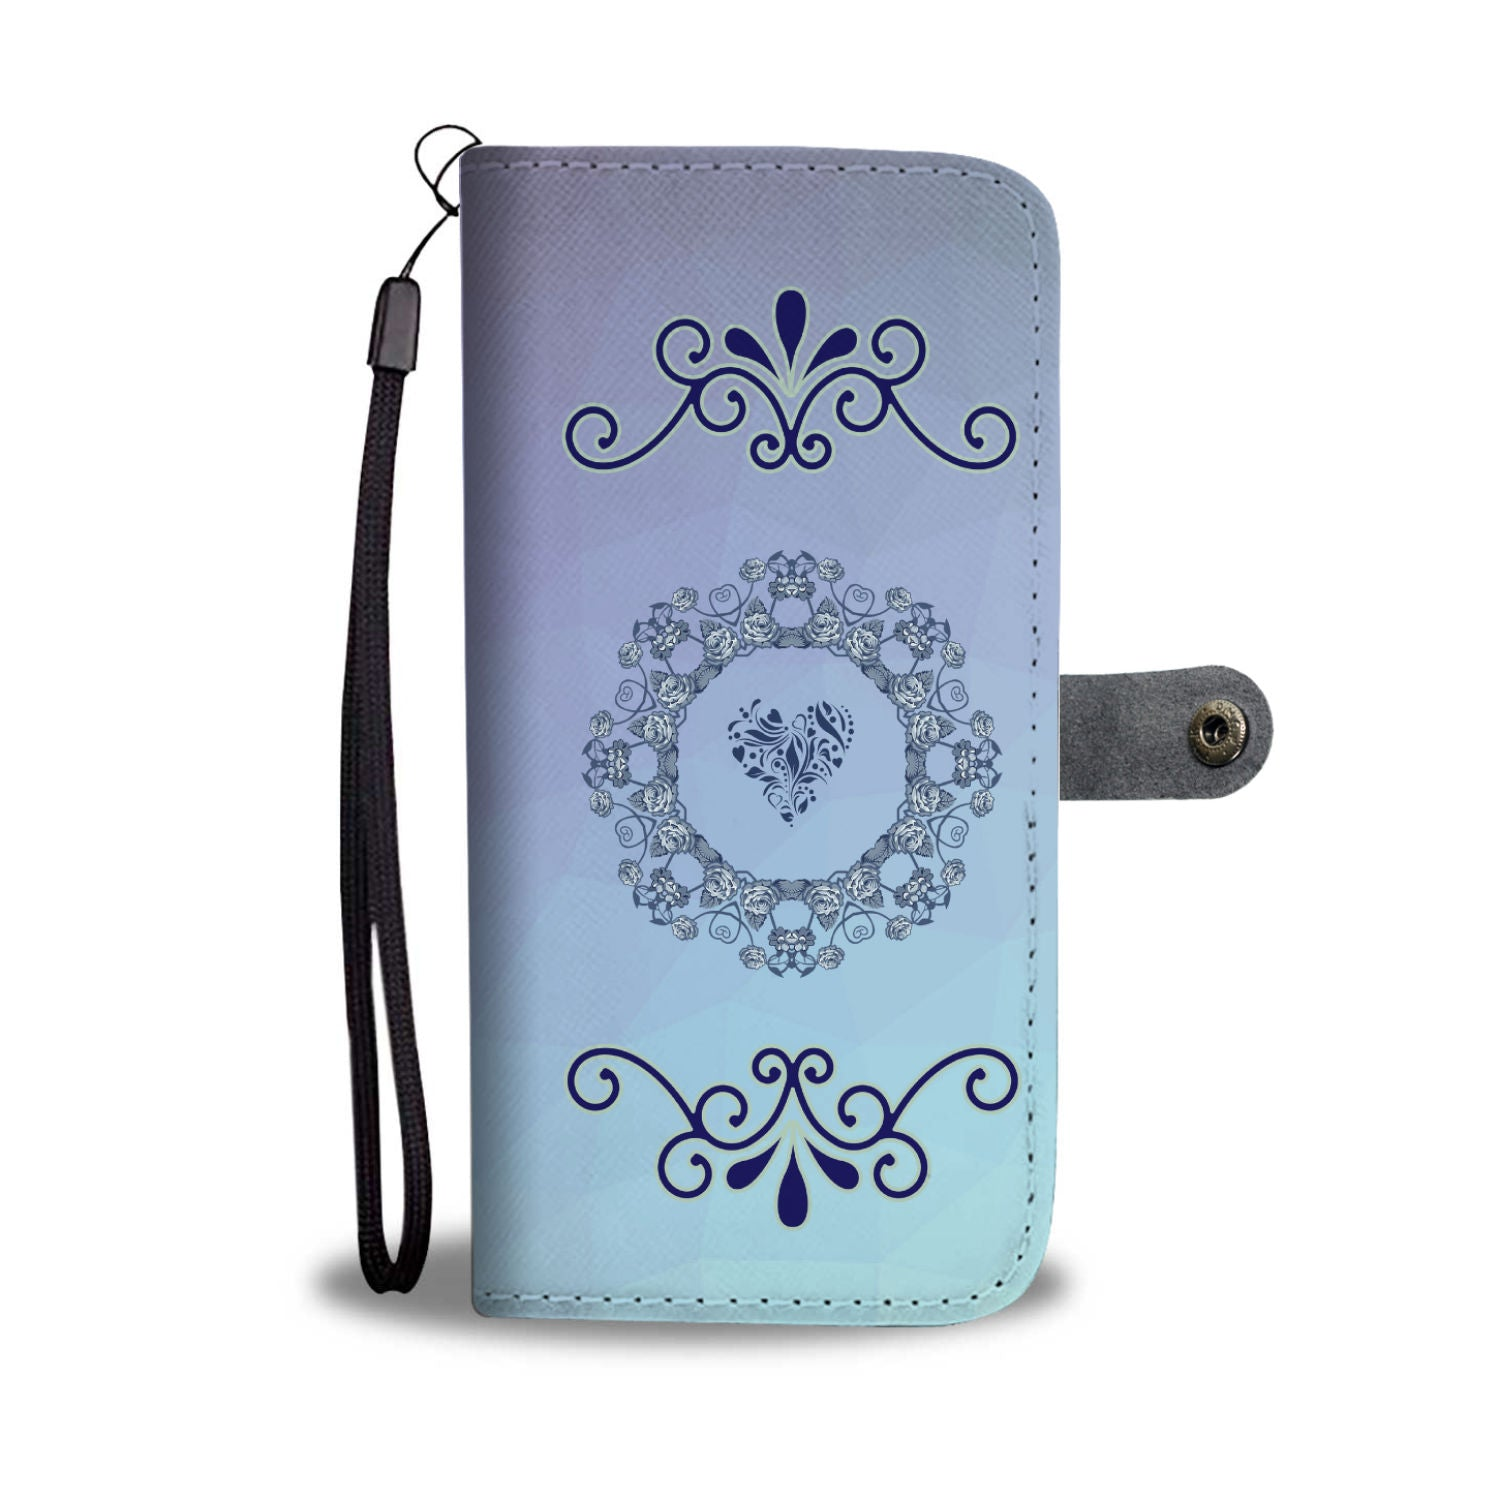 Gradient Blues Bible Verse Isaiah 40:8 Wallet Phone Case With Scroll pattern